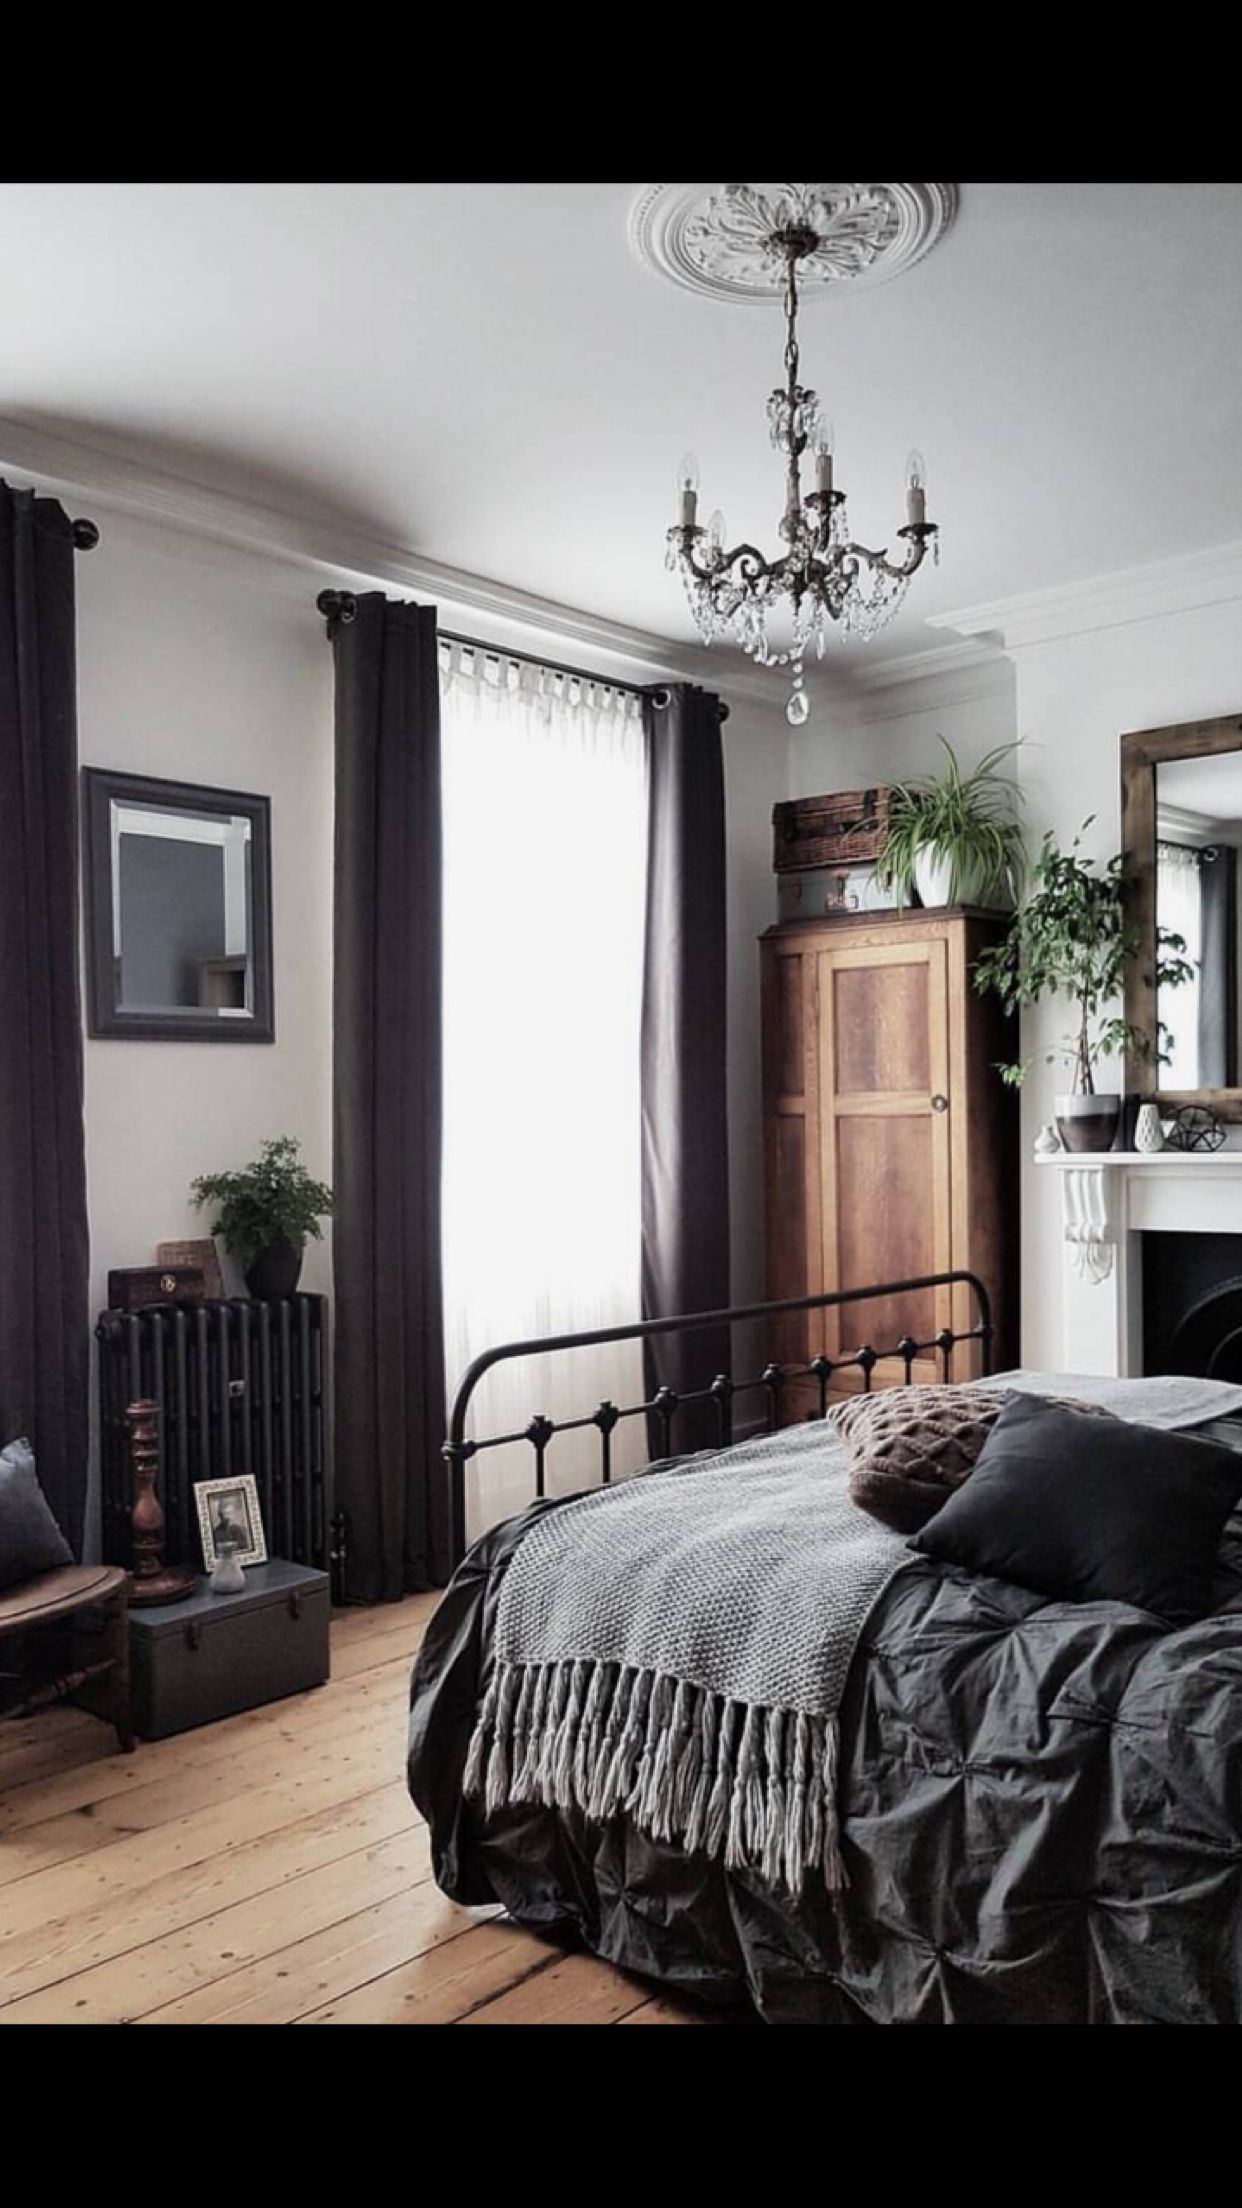 Minimalist House 85 Design: Love The Dark Bed Sheets And Curtains. The Light Wood Floors Complements Them So Well. Great